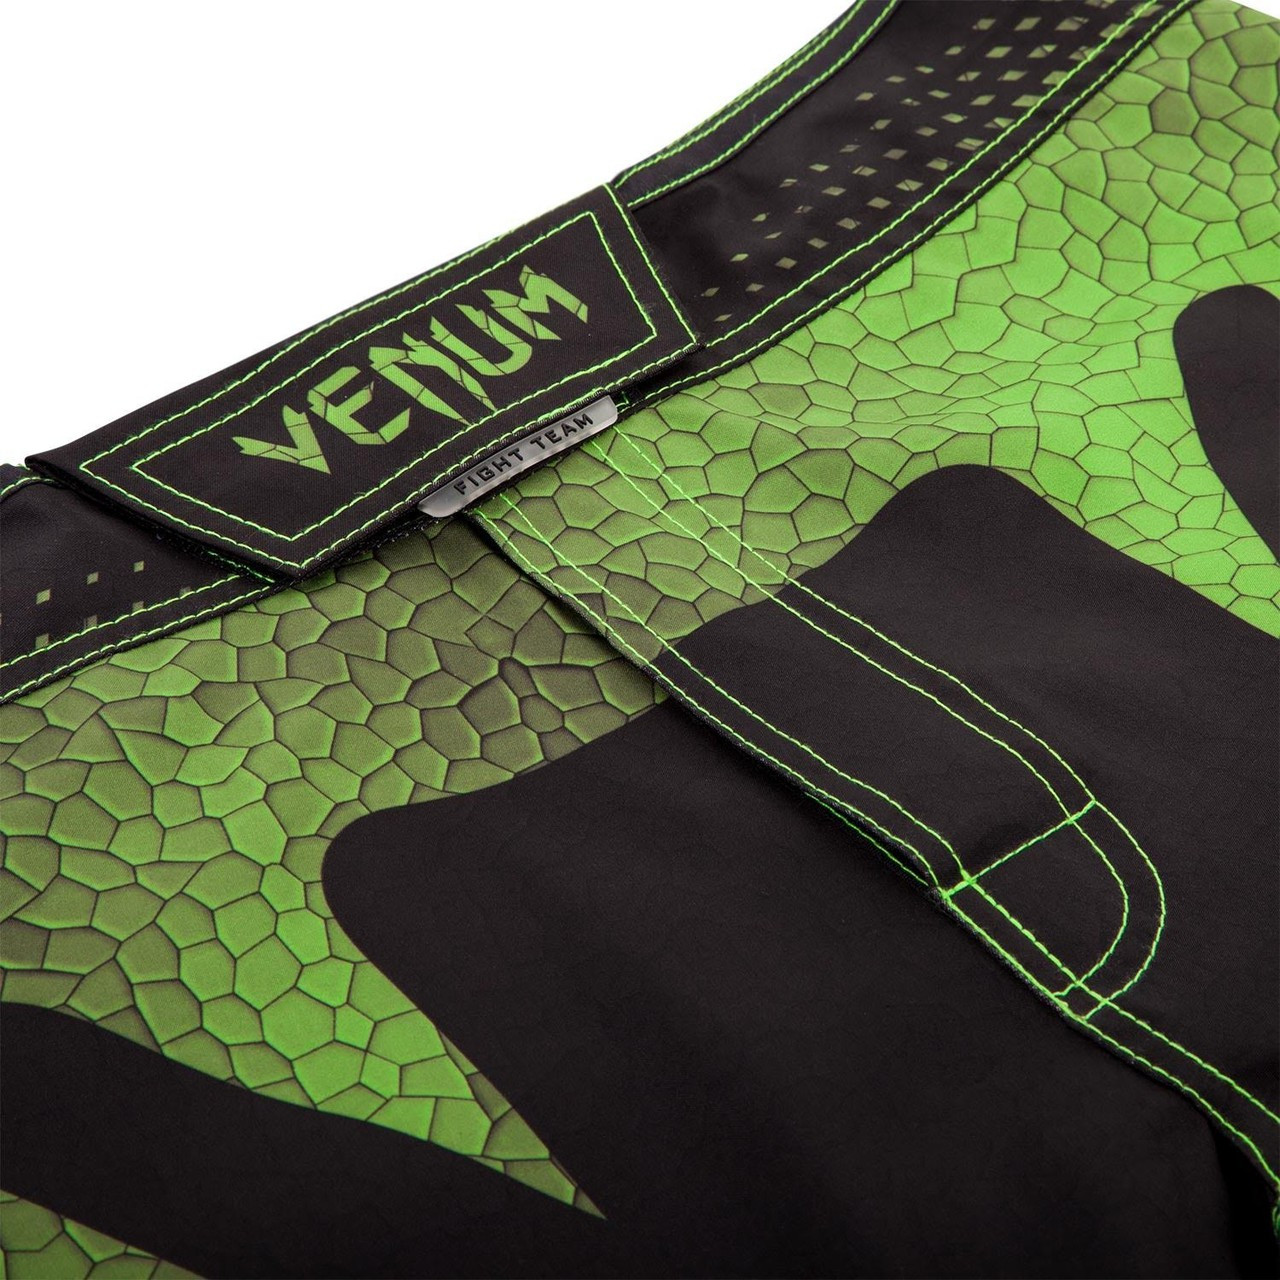 Zoom into crotch and vault closure system of the Venum Hurricane Fightshorts Amazonia Green MMA Shorts now available at www.thejiujitsushop.com  Top MMA and Grappling Shorts  Enjoy Free Shipping from The Jiu Jitsu Shop today!